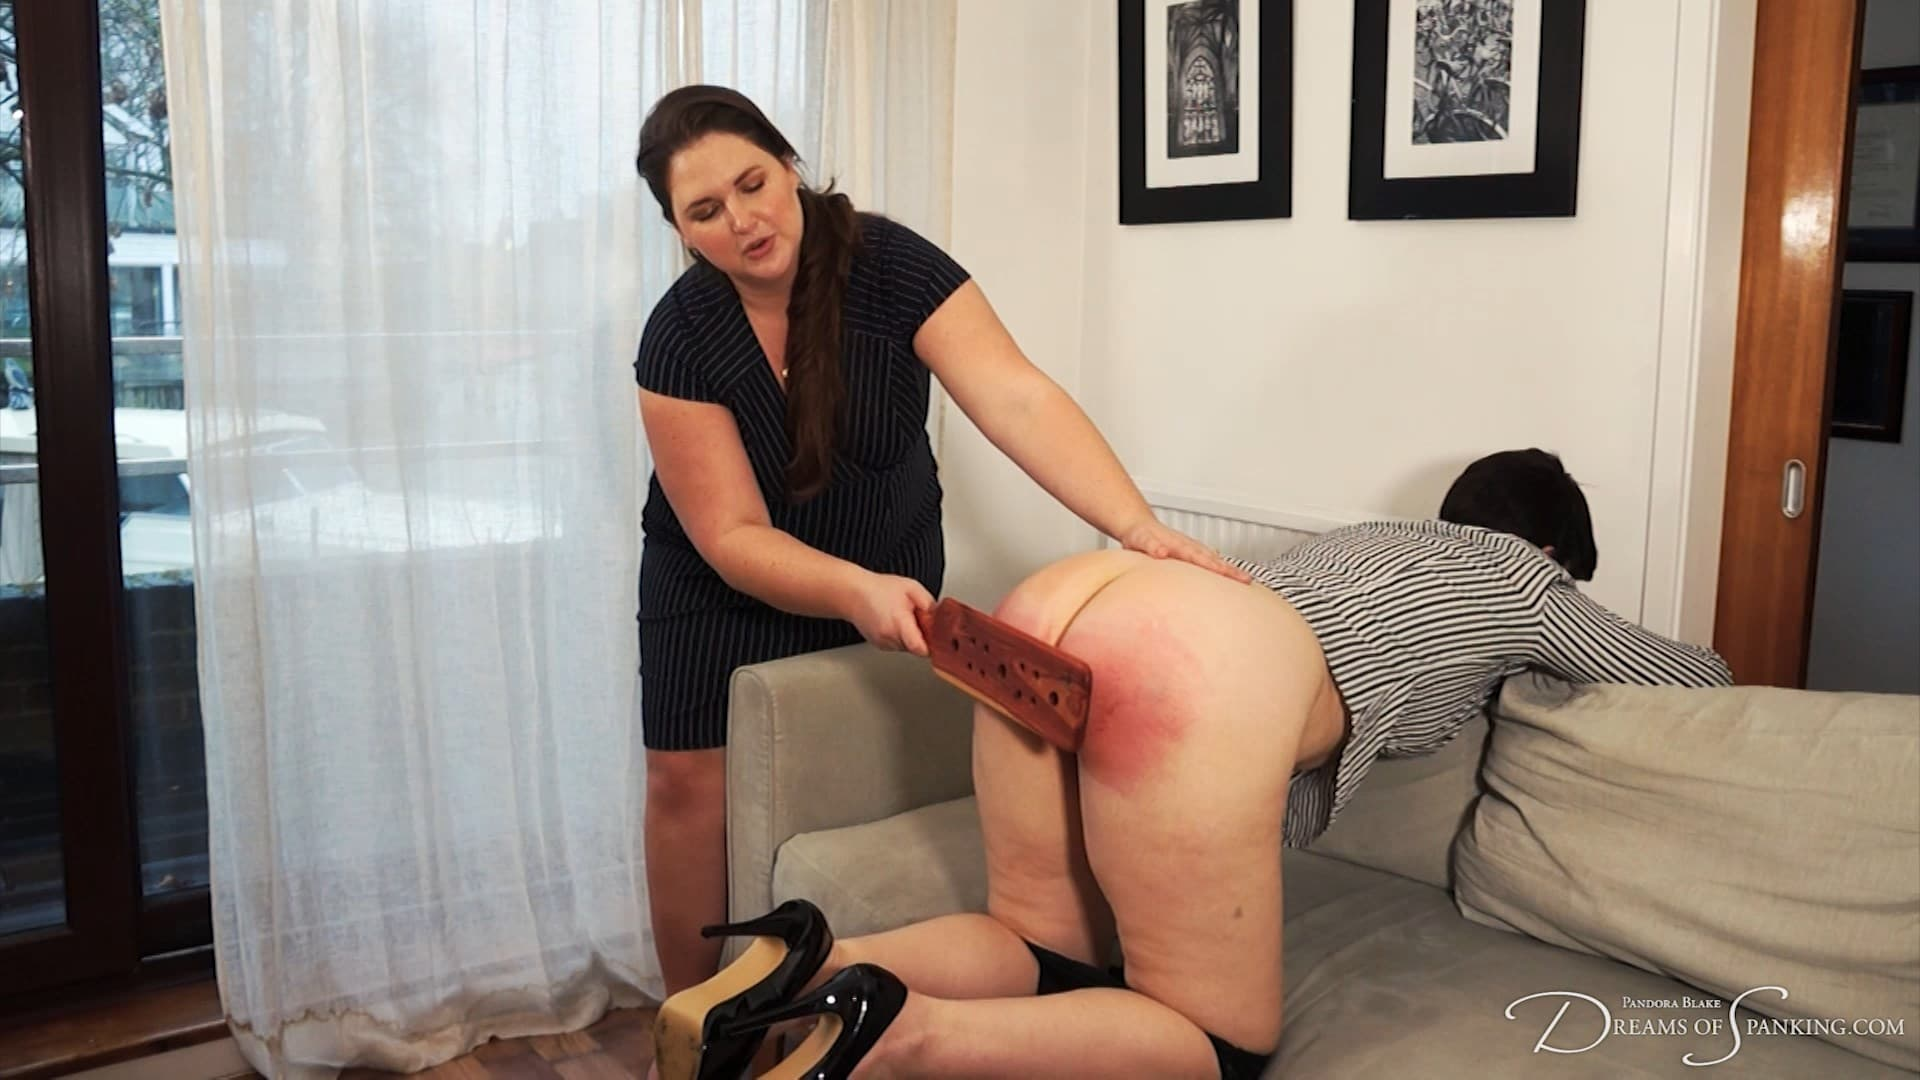 Dreams of Spanking – MP4/Full HD – Pandora Blake, Kelley May – Paddled And Humiliated